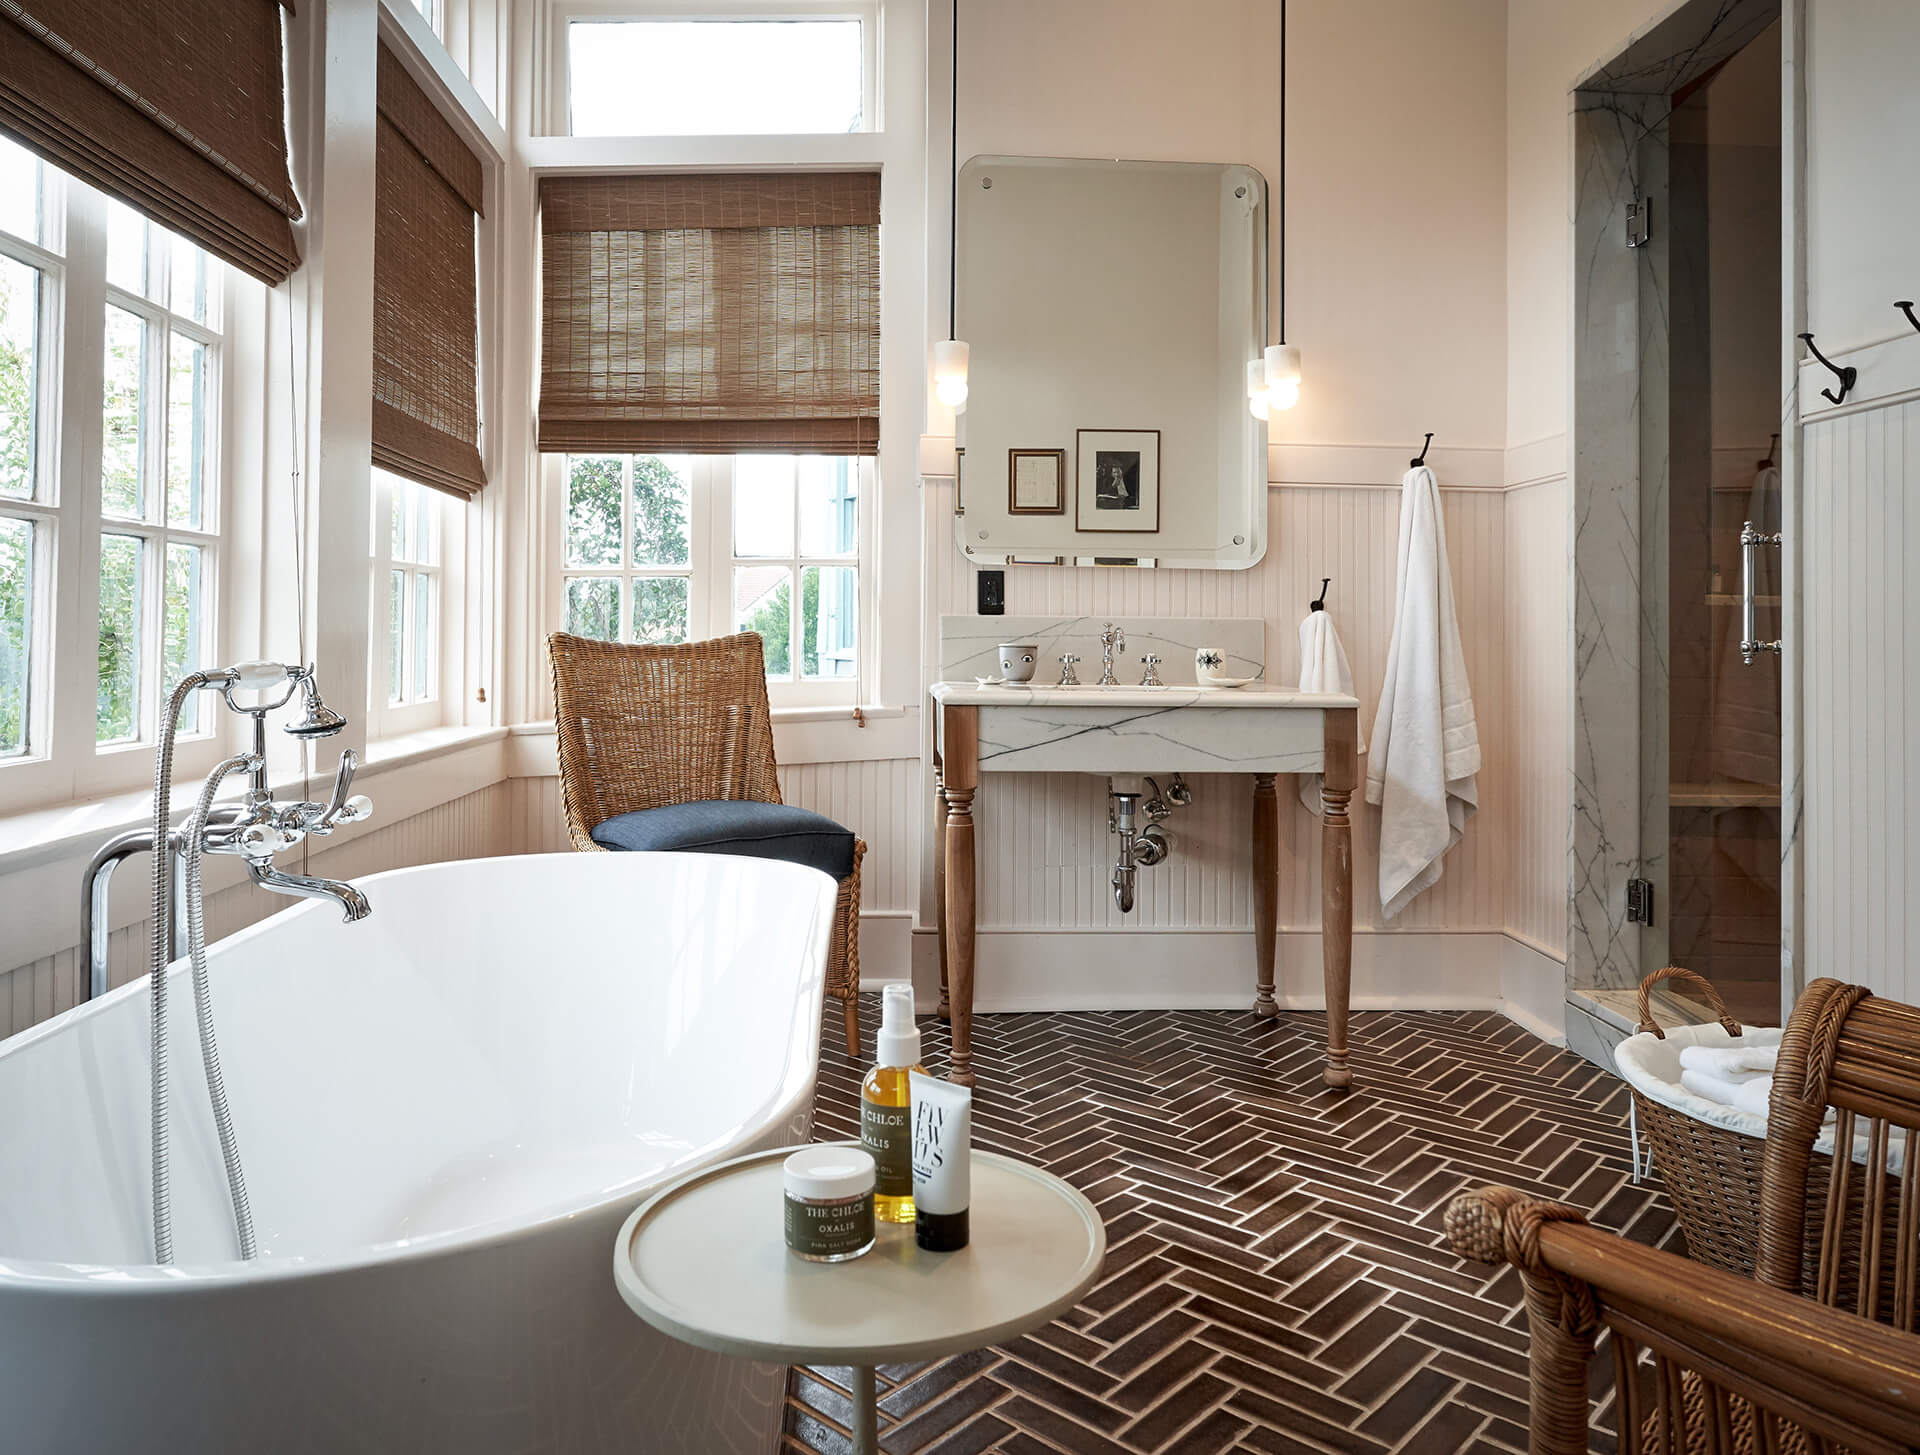 A light filled bathroom | The Chloe designed by Sara Costello | STIRworld